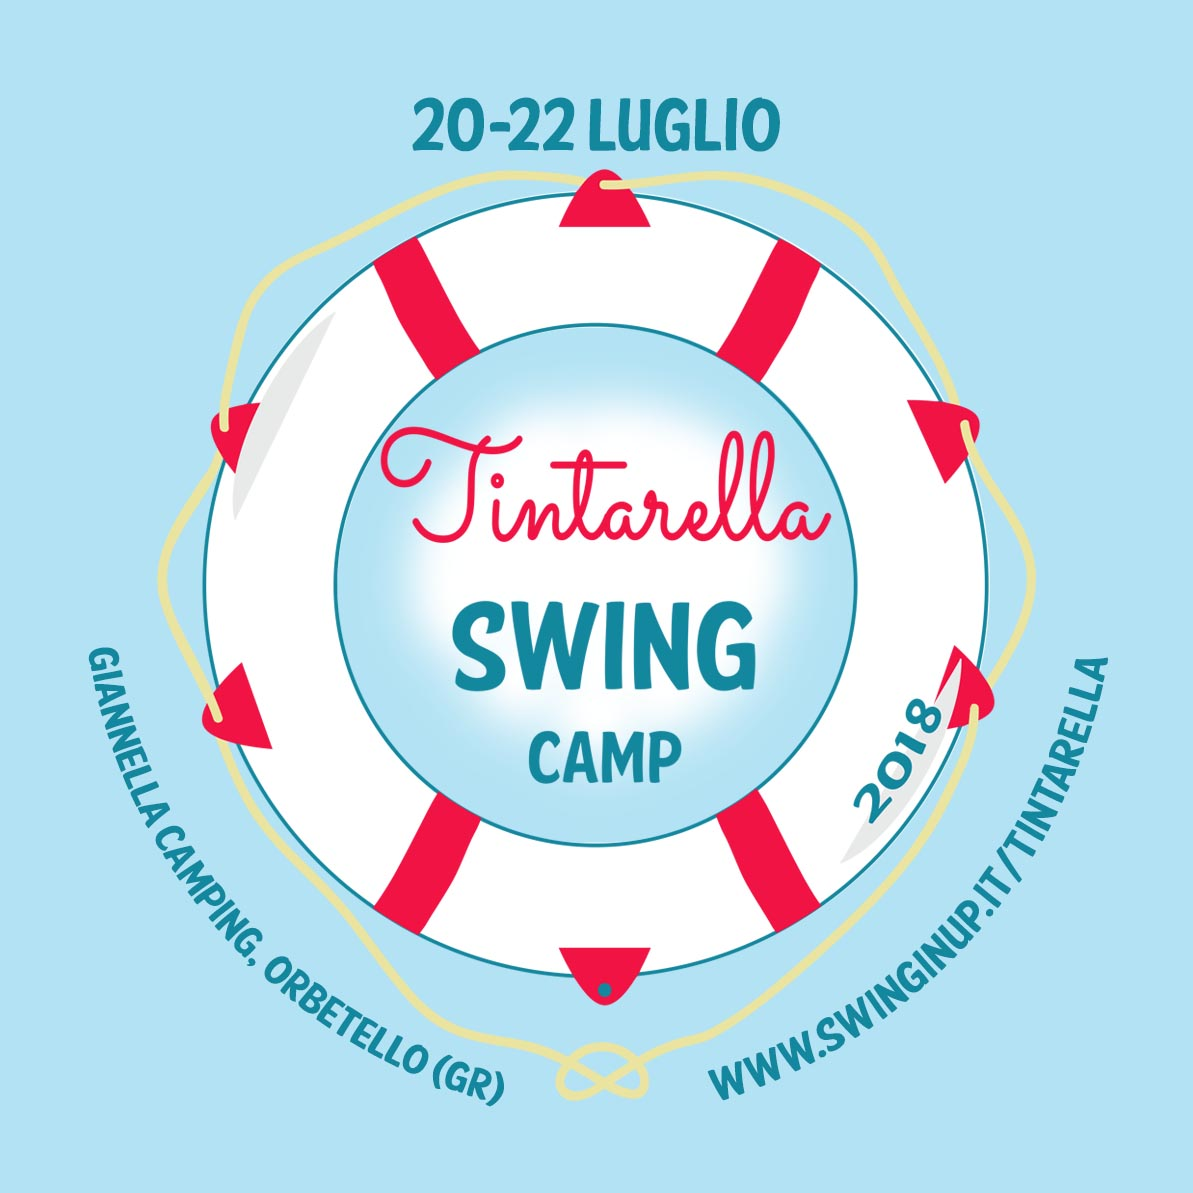 Tintarella_swing_camp